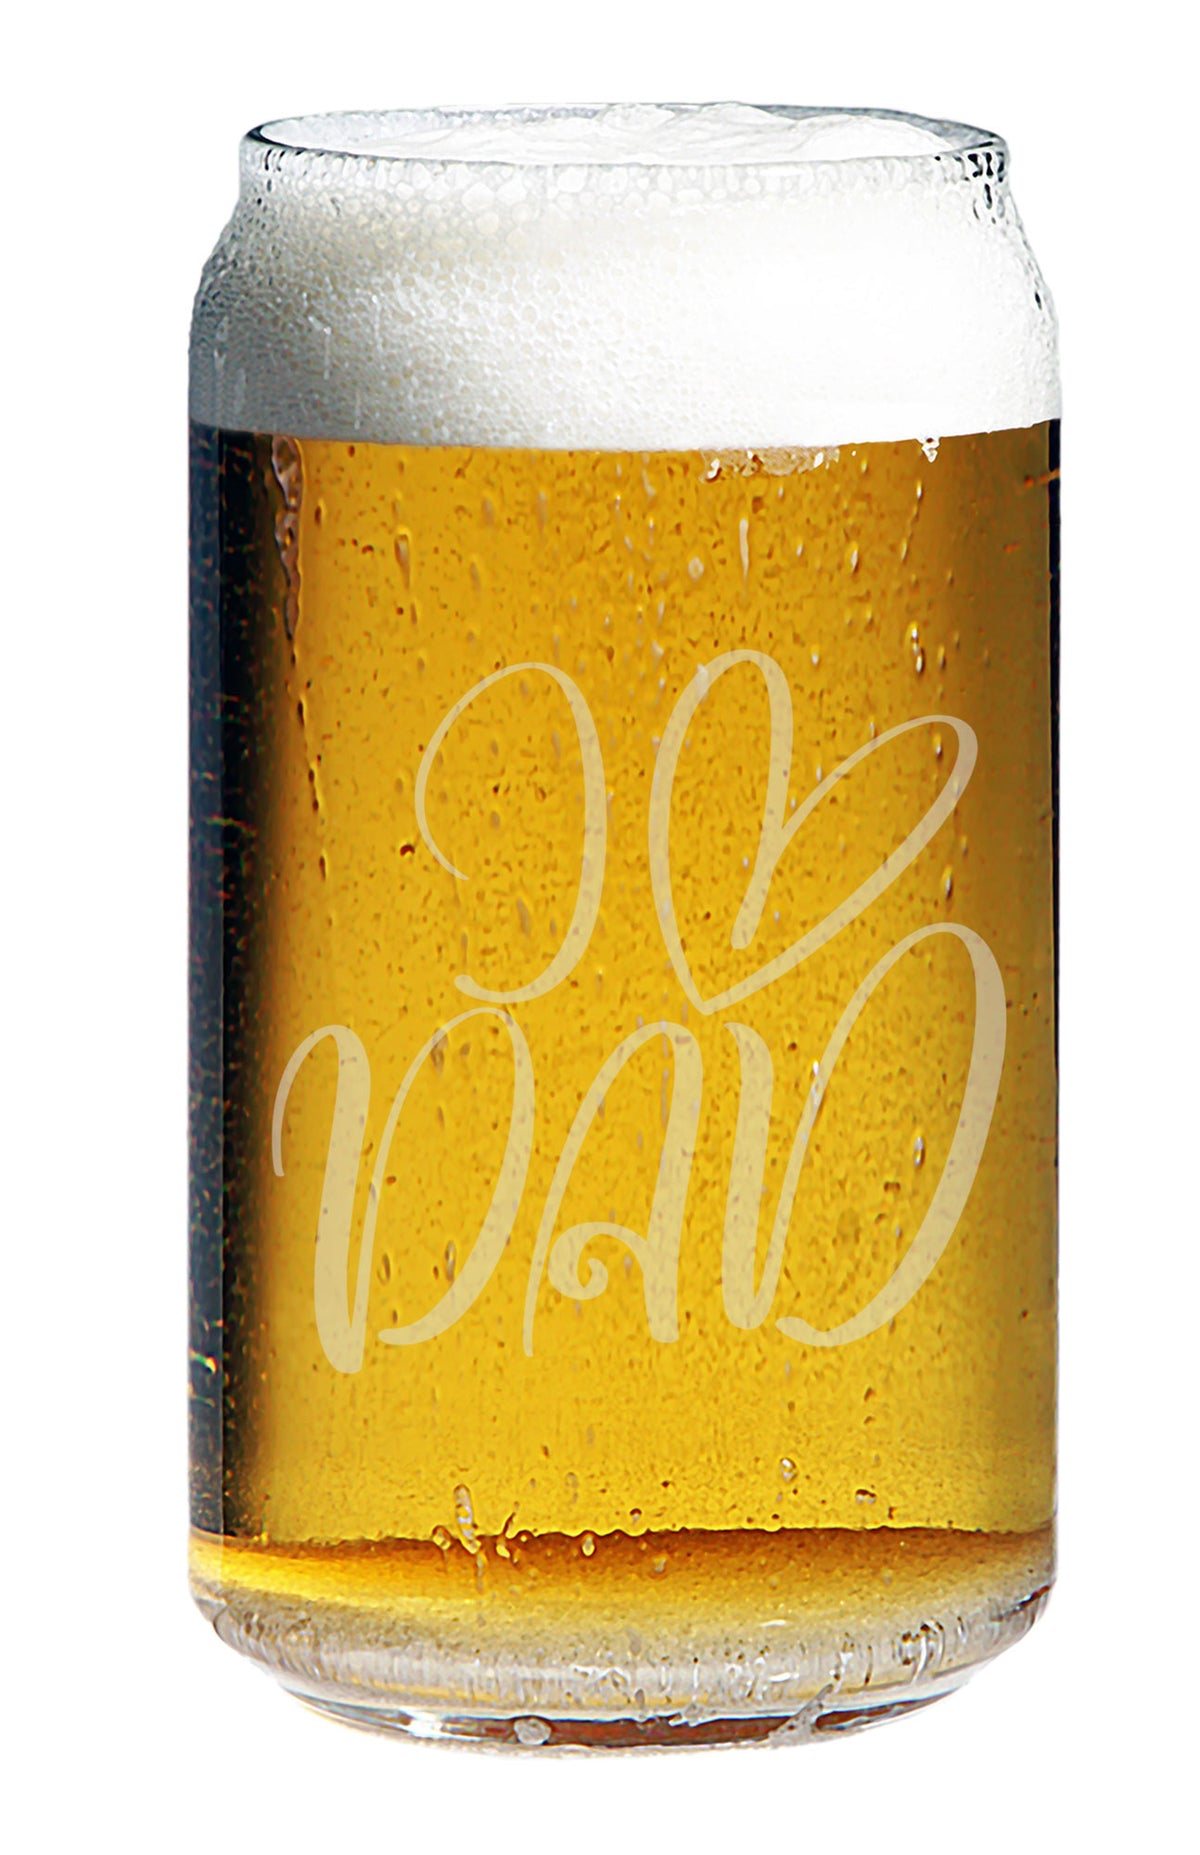 I Love Dad - Engraved Pint Beer Glass, 16 oz - Gift For Dad and Grandpa